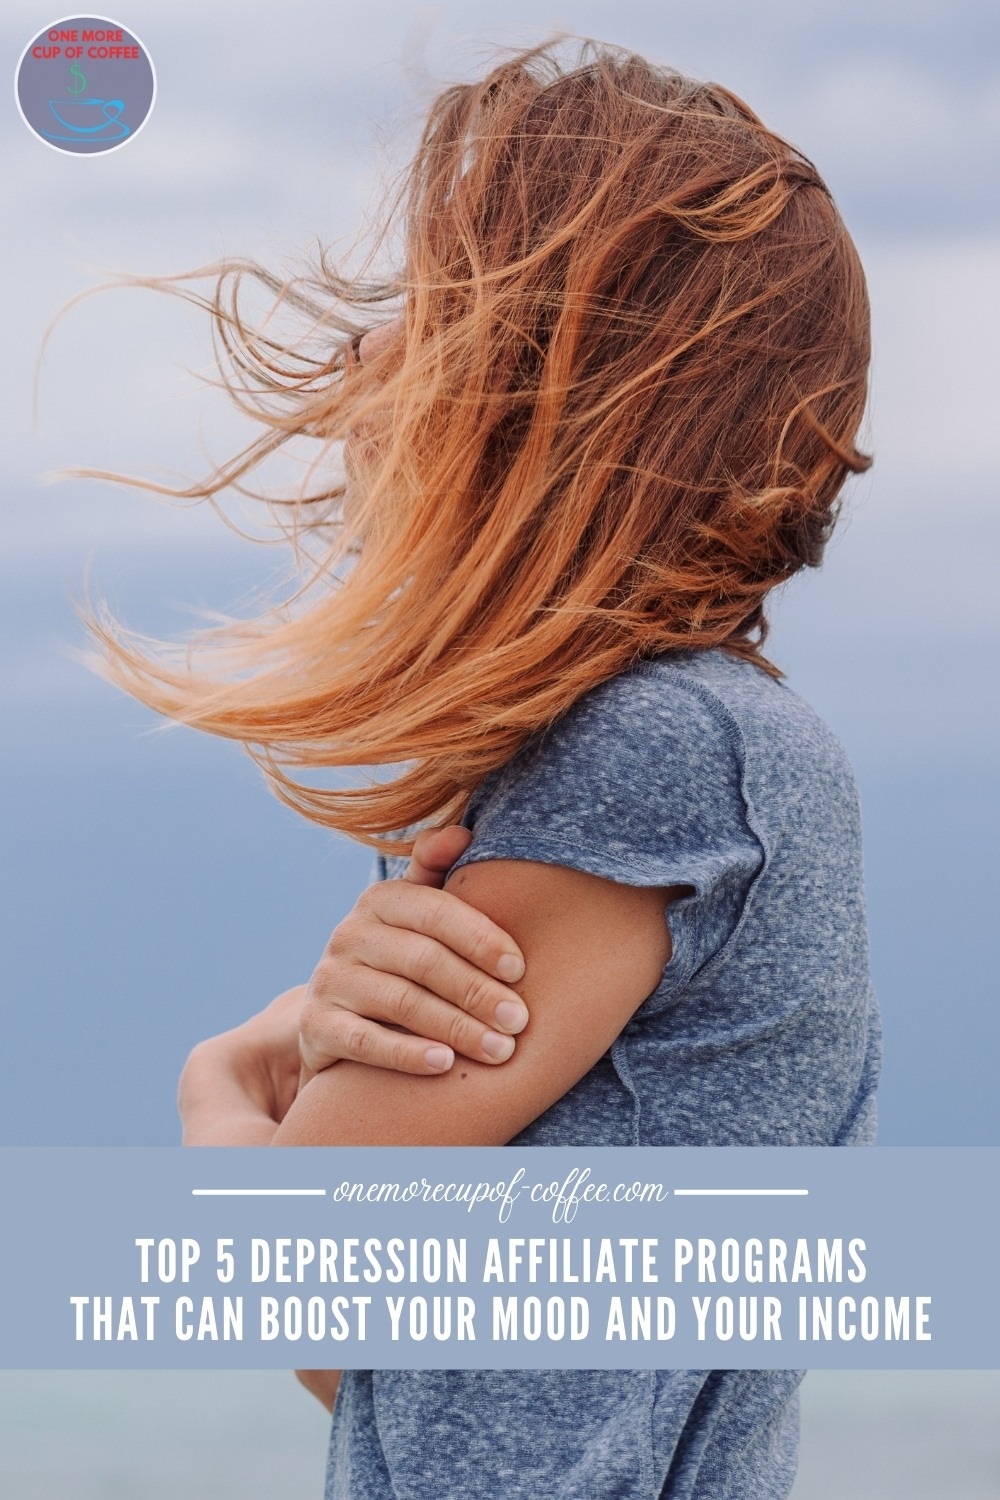 """woman's side profile wearing a blue t-shirt, hugging herself, with her red hair covering her face because of the wind; with text overlay """"Top 5 Depression Affiliate Programs That Can Boost Your Mood And Your Income"""""""